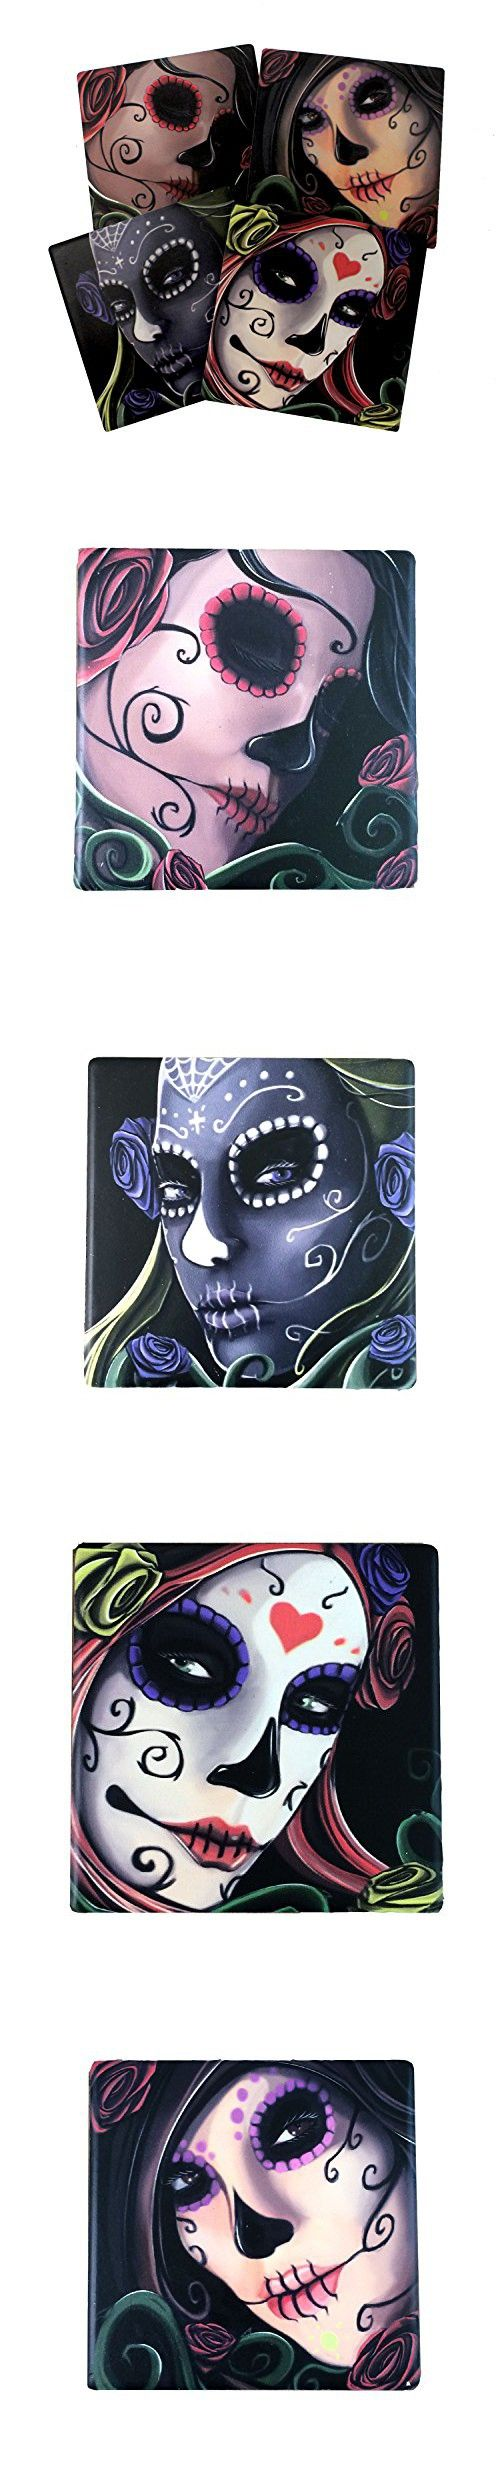 761 best decorative tiles images on pinterest room tiles subway day of the dead sugar skull sisters coaster set of 4 by dwk decorative ceramic dailygadgetfo Choice Image